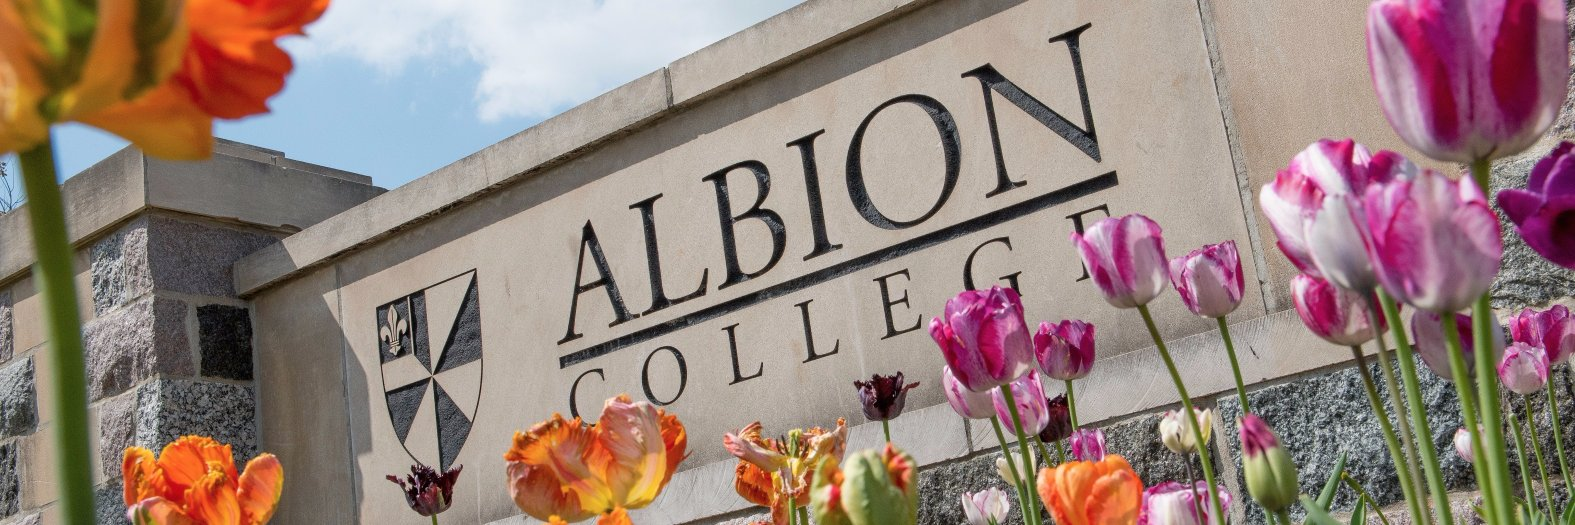 Albion College's official Twitter account